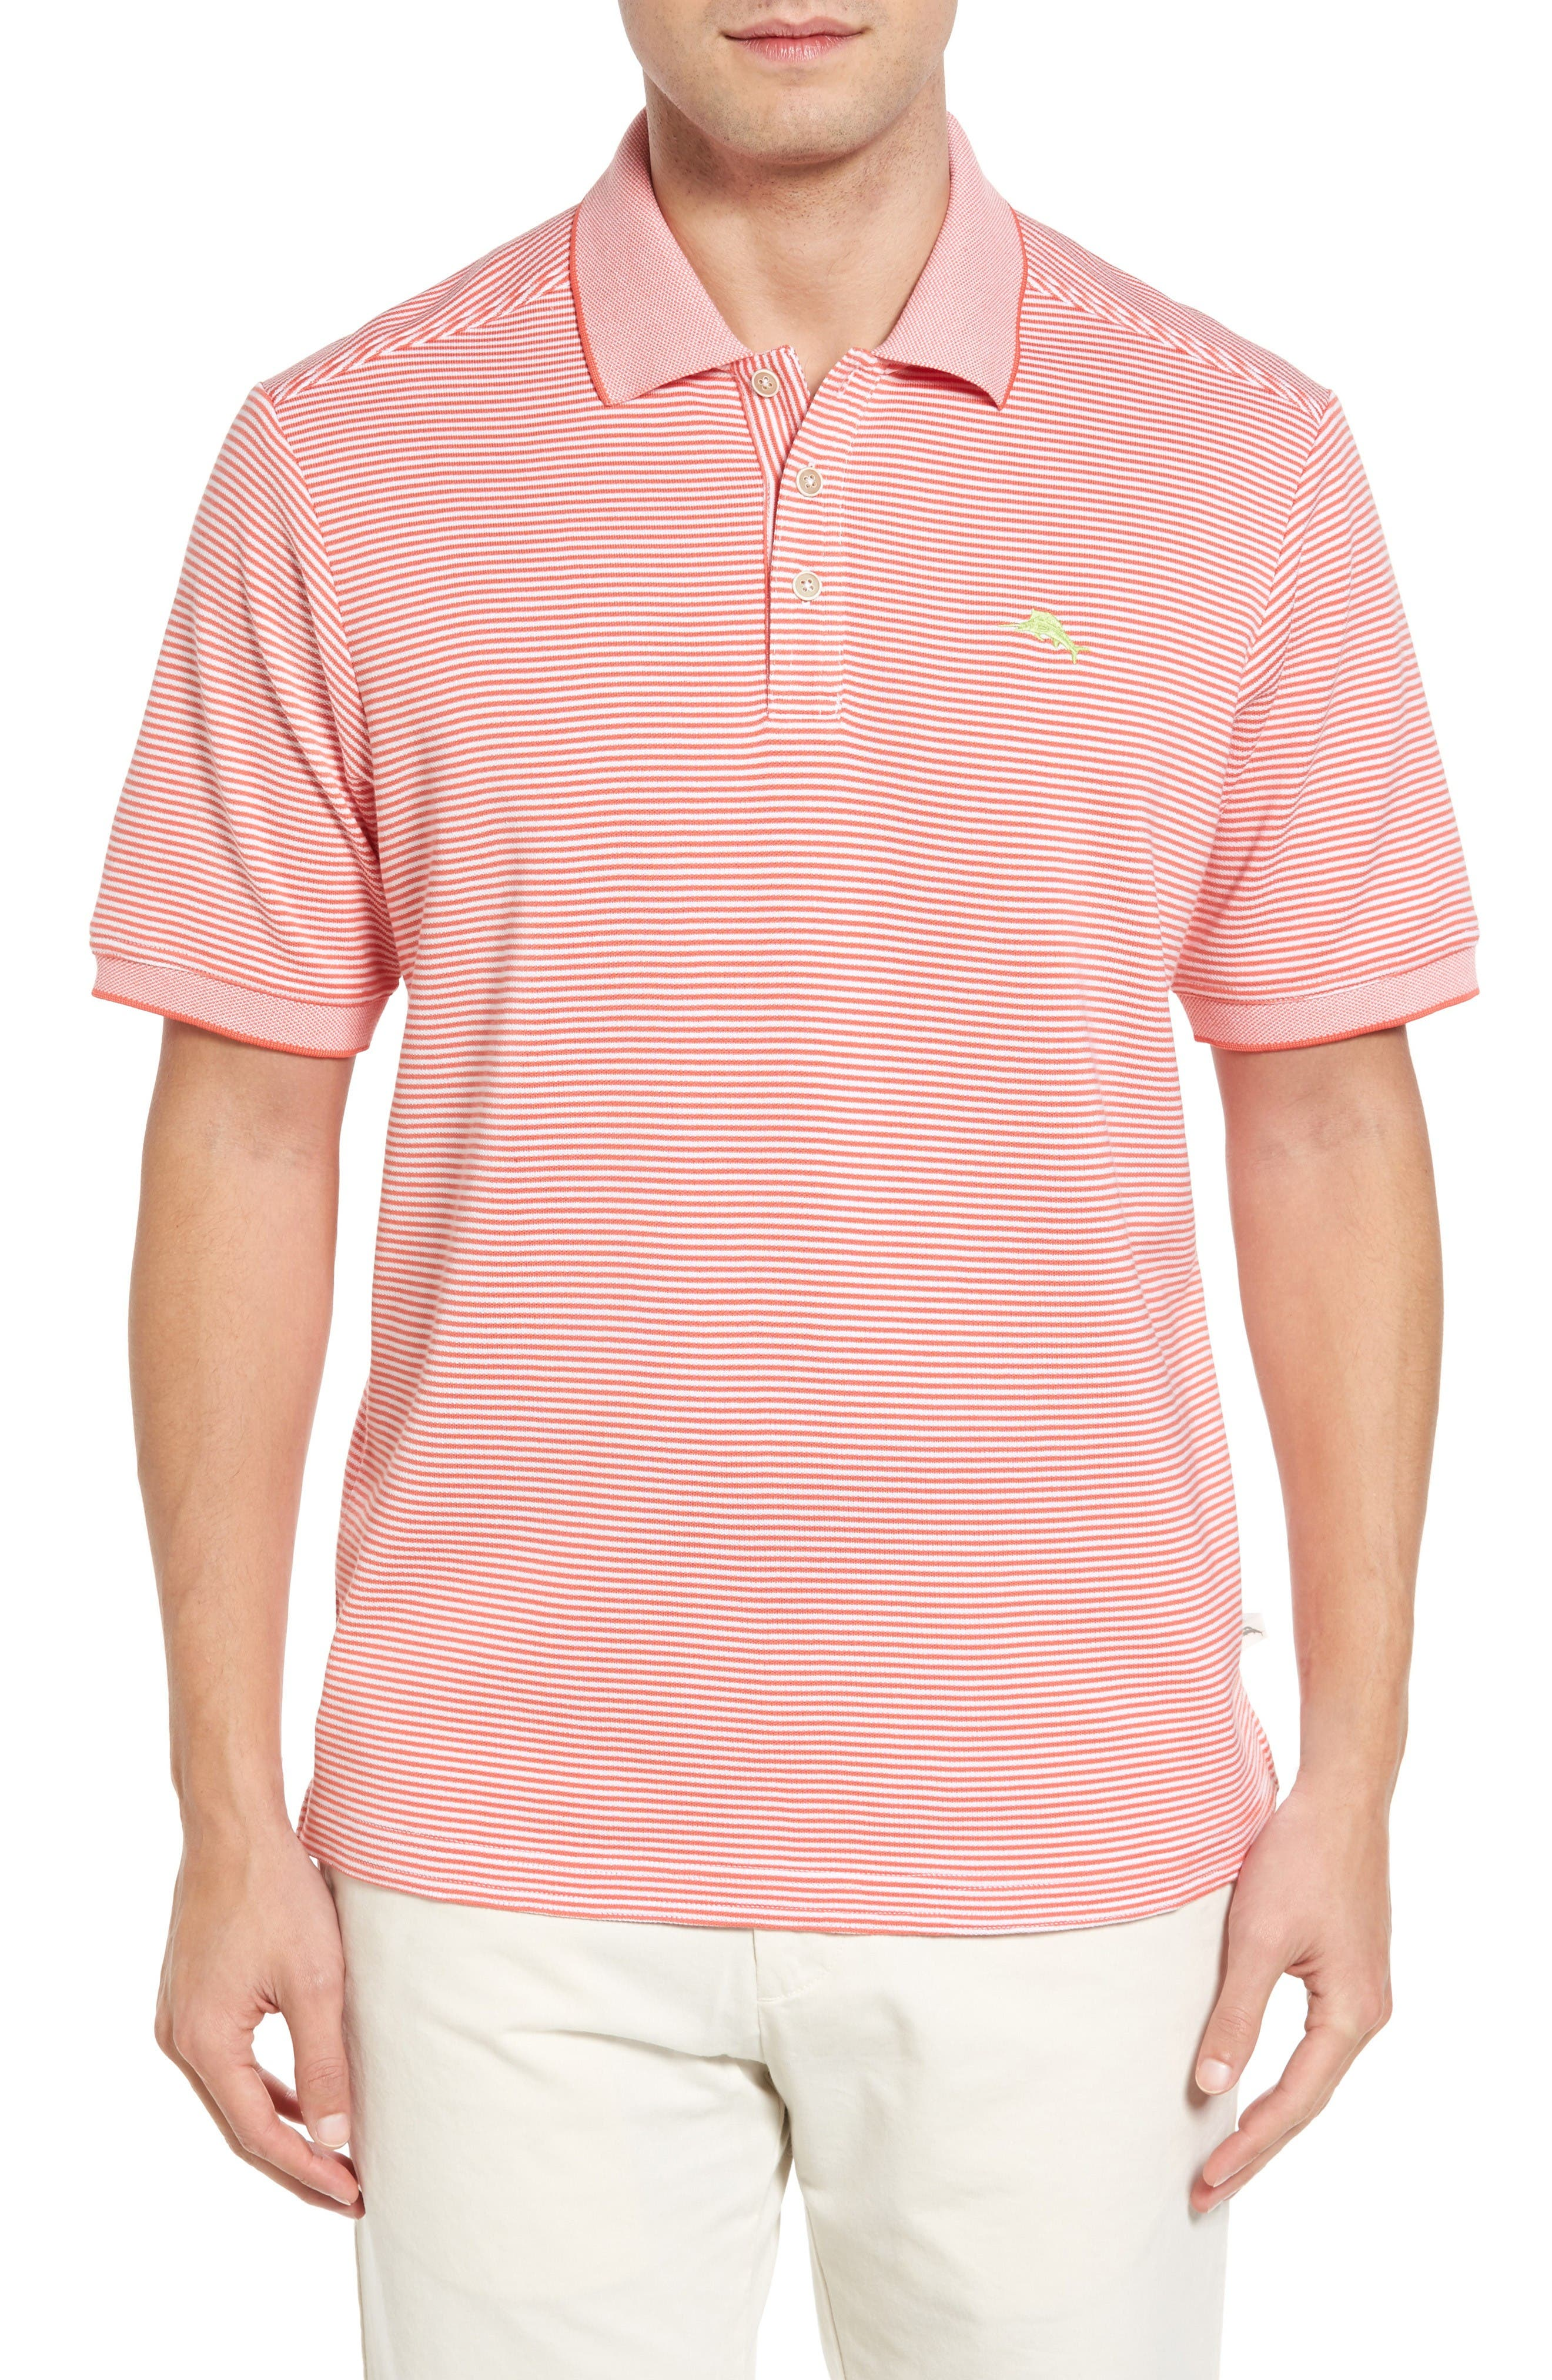 Alternate Image 1 Selected - Tommy Bahama Emfielder Stripe Pima Cotton Blend Polo